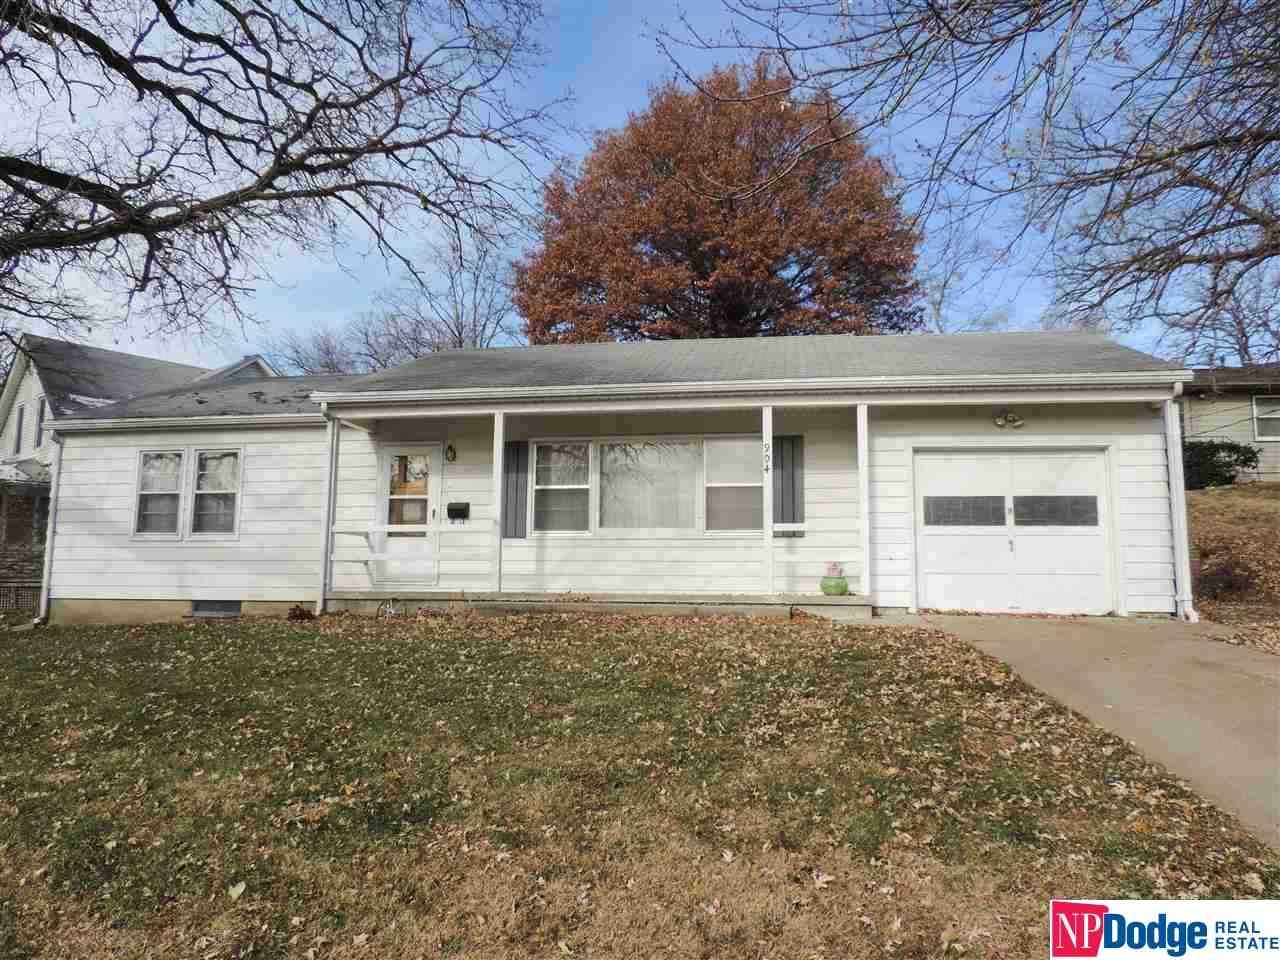 Lovely 2 Bed, 2 Bath, Ranch home located close to Main St has so much to offer!  Large Kitchen with custom cabinets, pantry and eat-in area. Separate Dining Room off of the Kitchen was once the 3rd Bedroom. Large Living Room with built-in corner cabinet and wood floors under the carpet. Good size Master Bedroom has 2 dual closets. There is a separate entrance from the Garage to the Finished Basement which includes a 2nd Kitchen, large finished area, ¾ Bath, lots of closets and storage space. This home also includes no maintenance steel siding, spacious 1 car Garage with additional storage space and built-ins, and a shed. Furnace and A/C new in 2011. Appliances in both Kitchens stay.